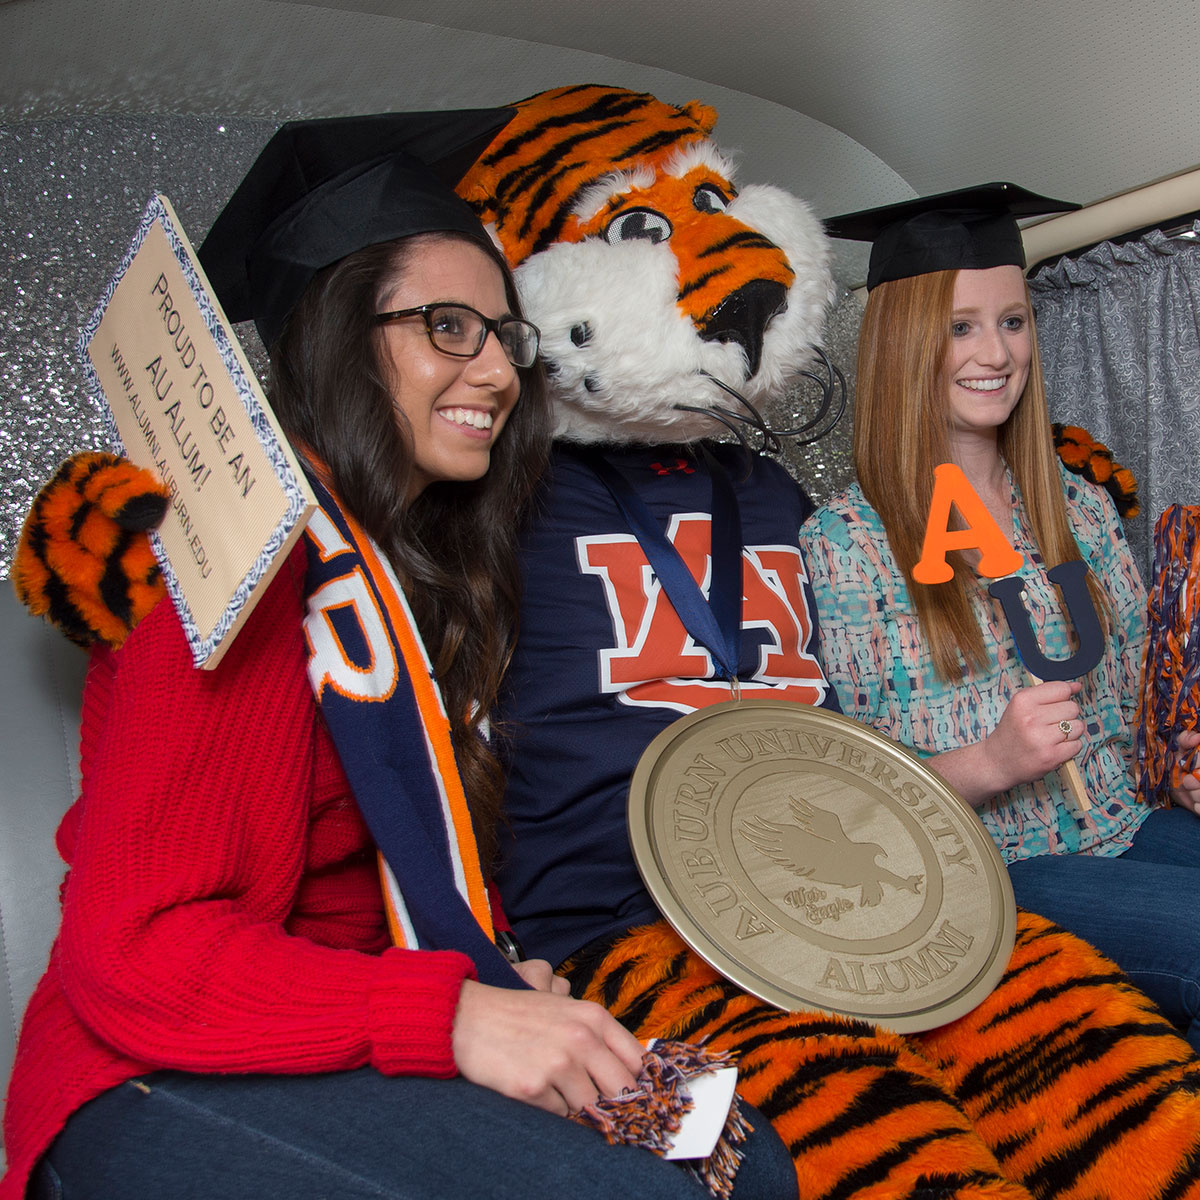 Aubie posing with medalion